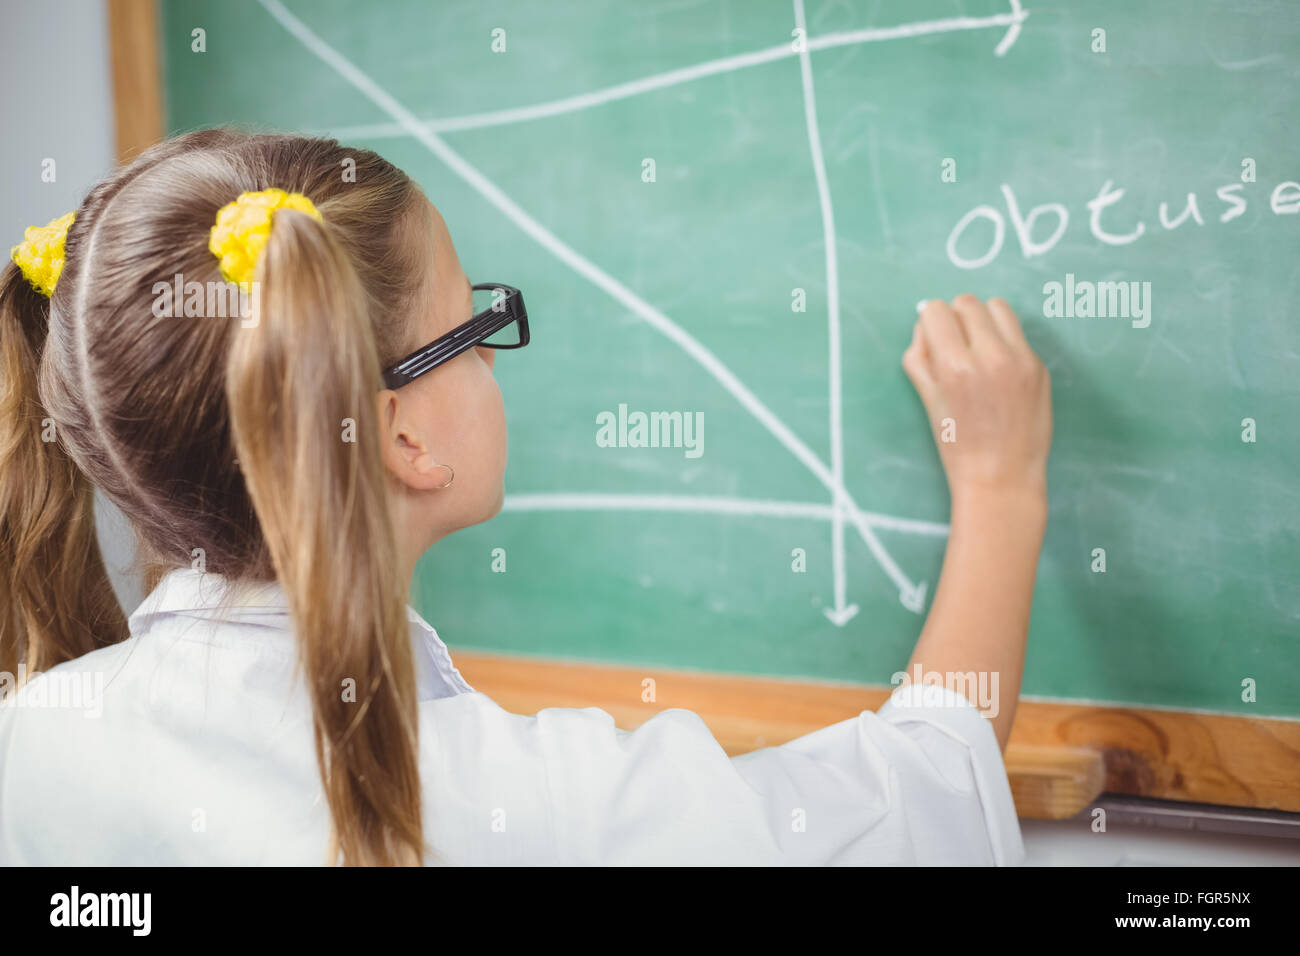 Pupil with lab coat writing on chalkboard in a classroom - Stock Image